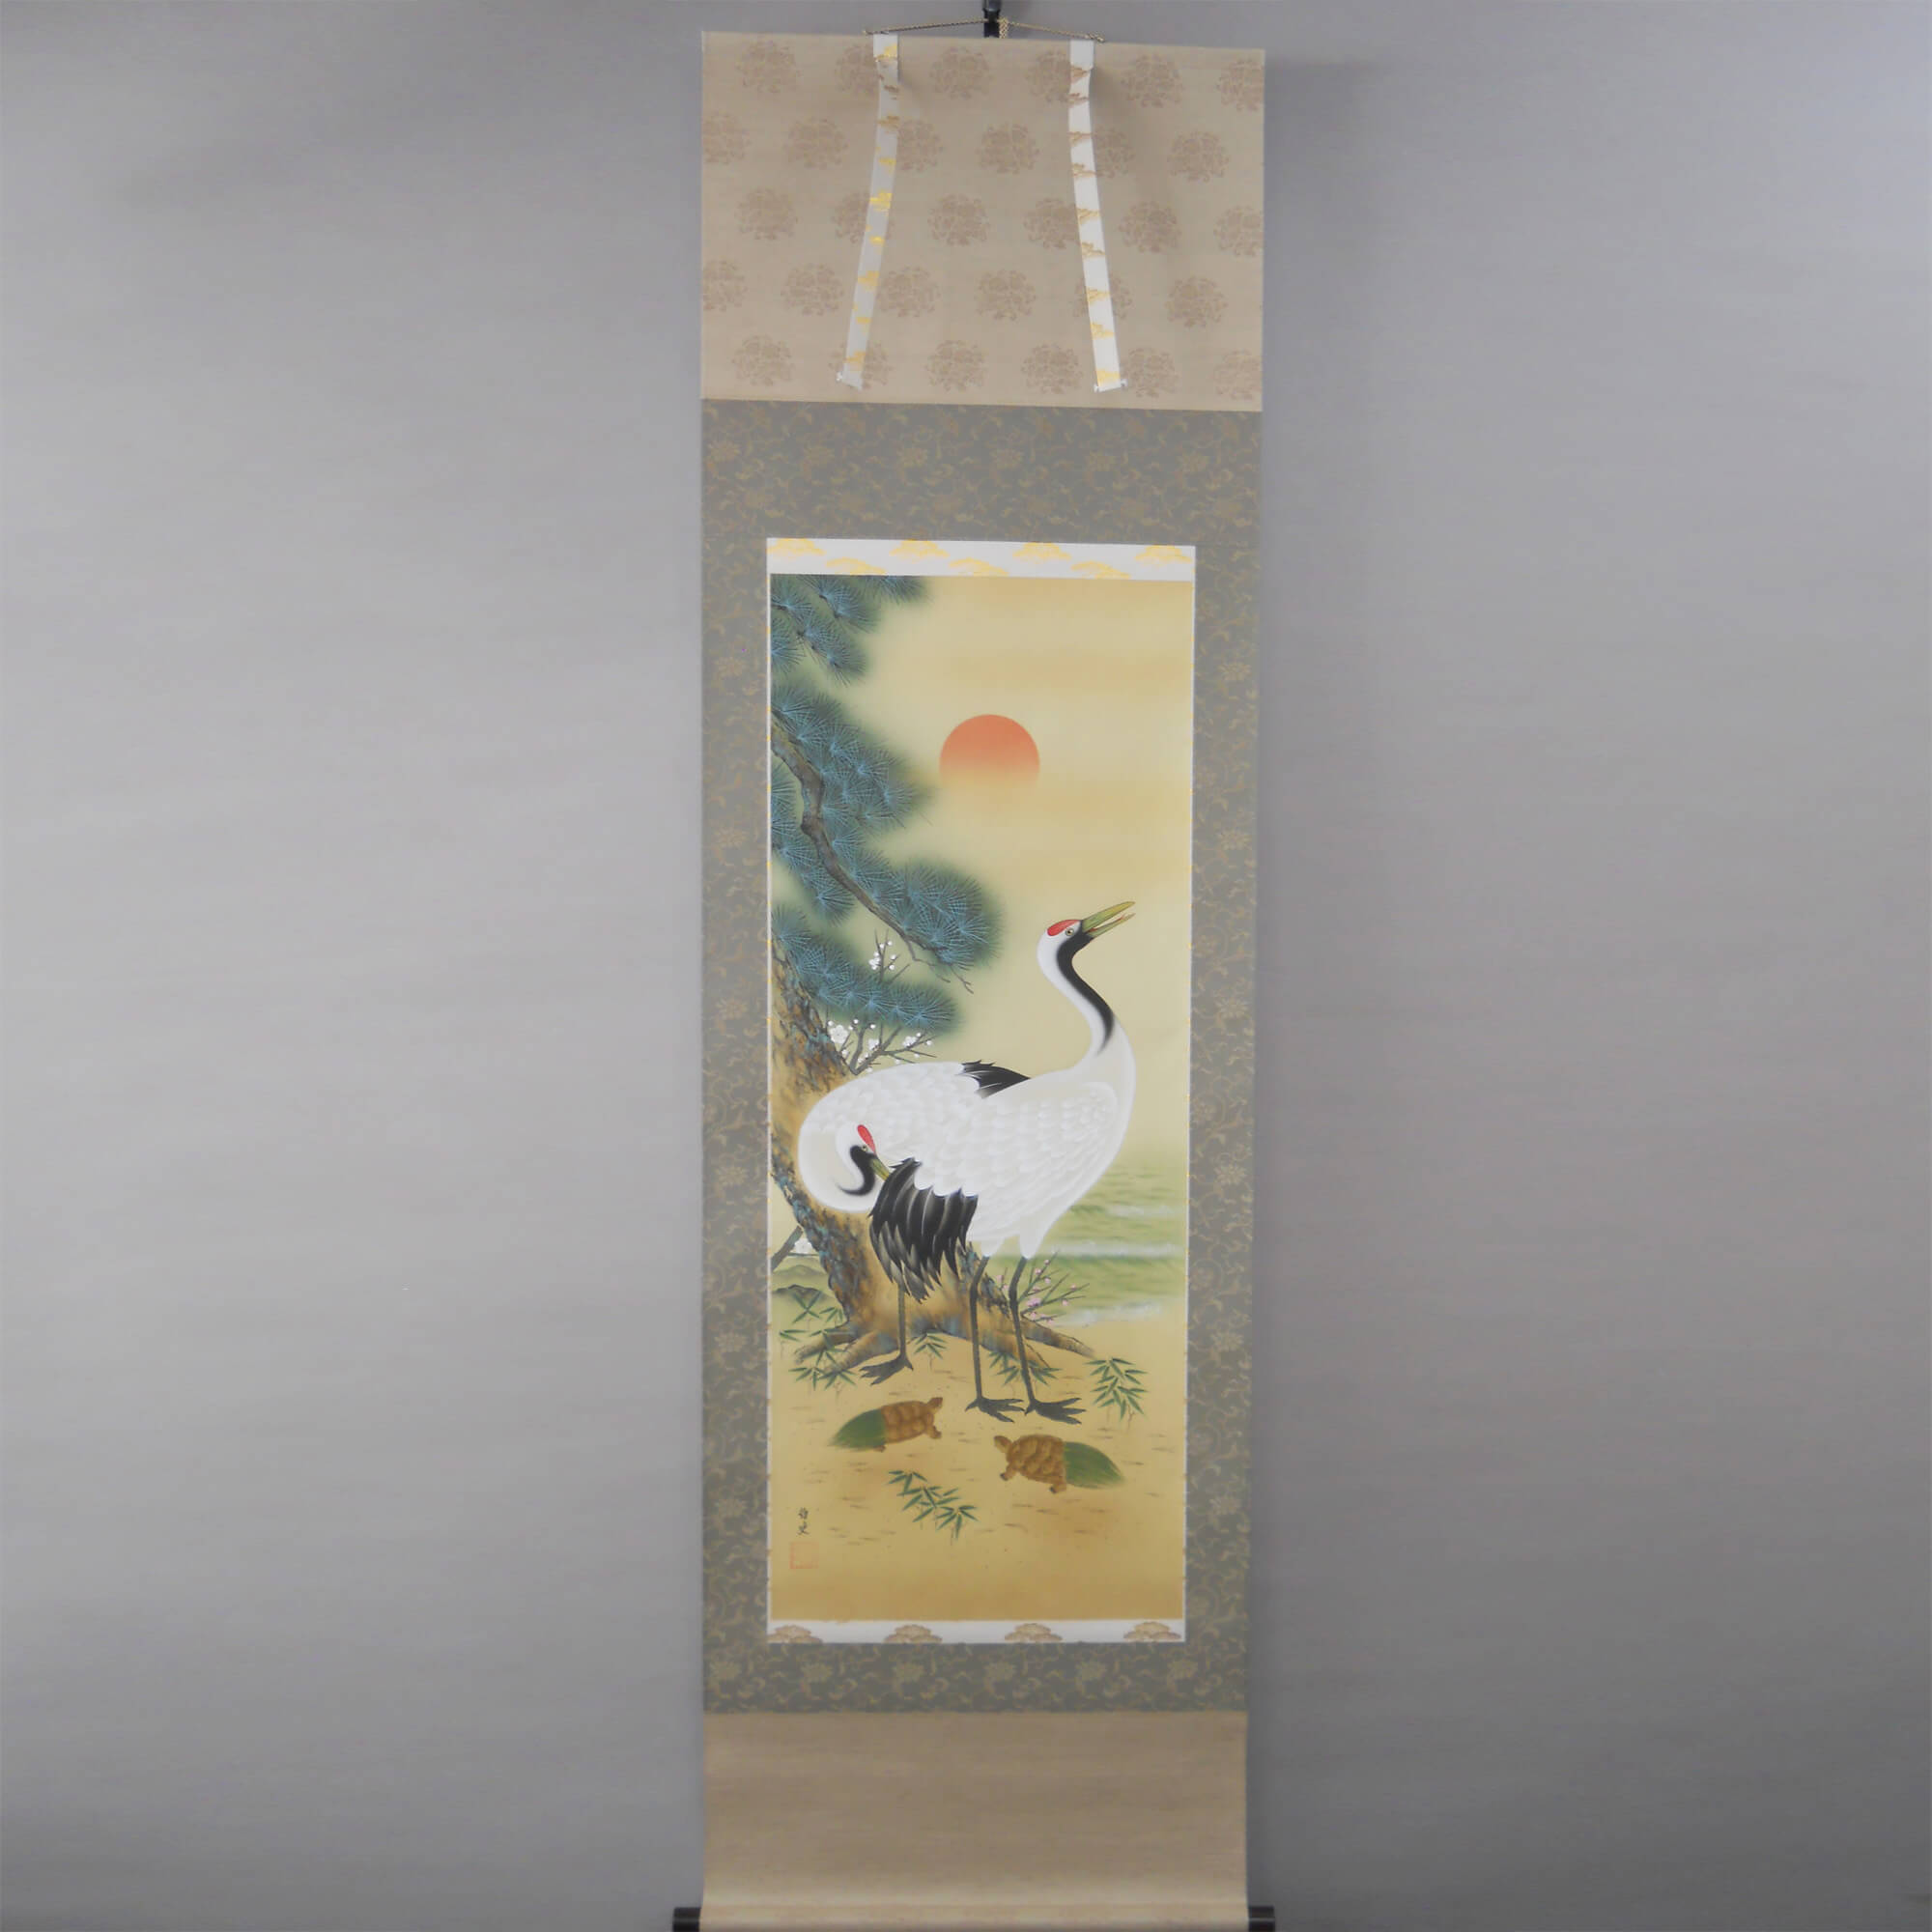 The Combination of Pine, Bamboo, Plum Trees, Cranes and Turtles / Satoshi Okuhira